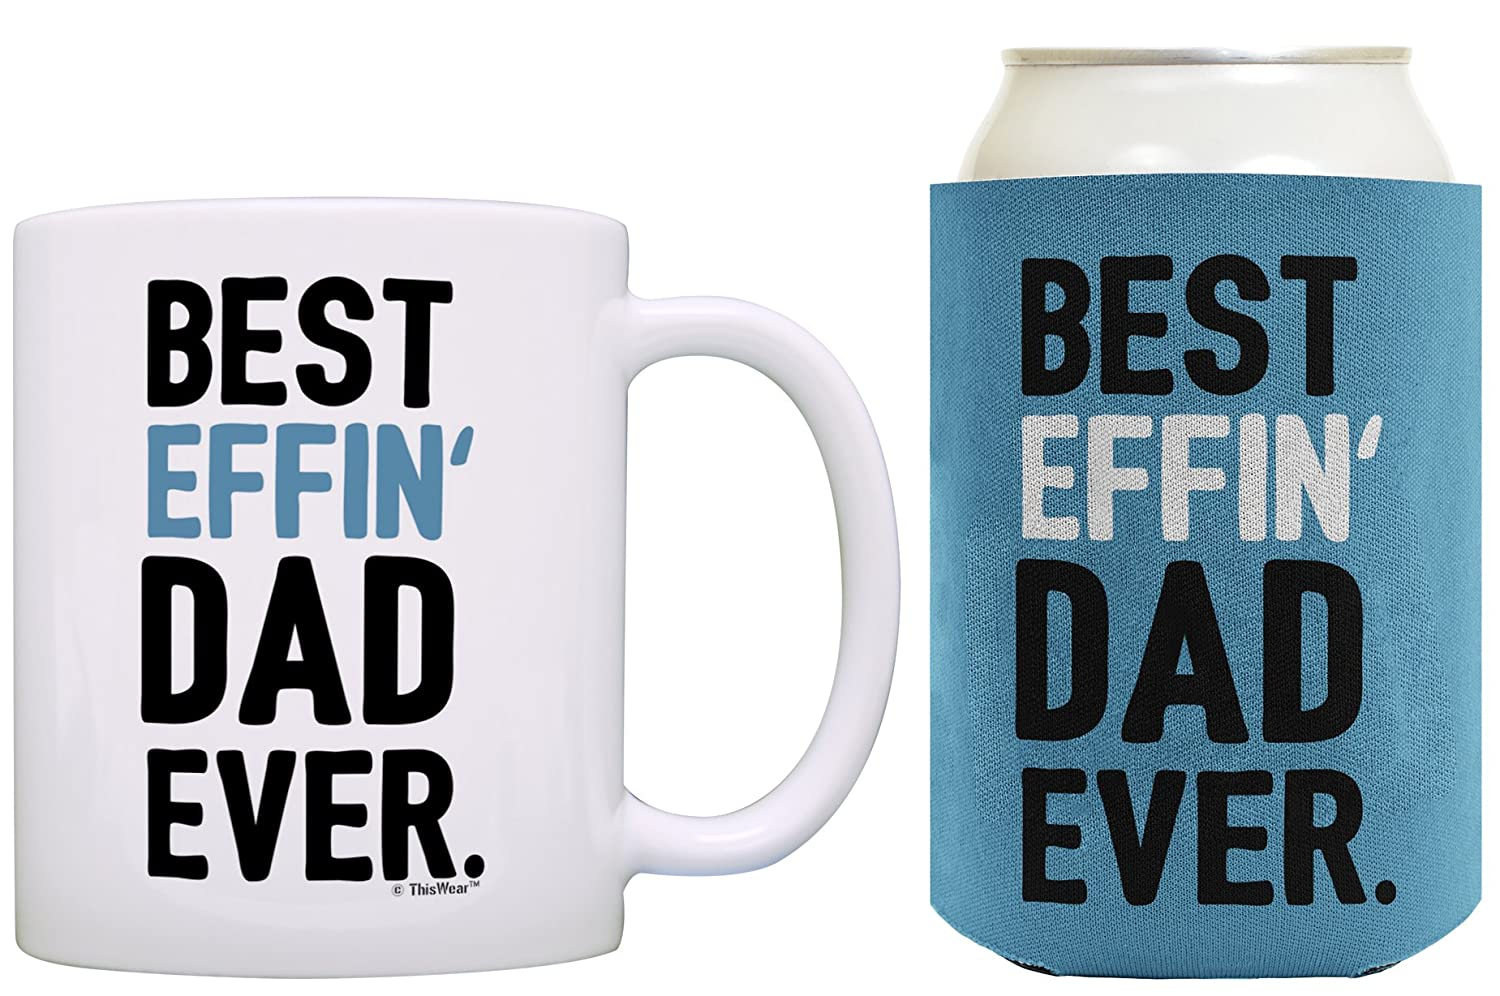 Birthday Gifts For Dad Best Effin Ever Fathers Day Gift Coffee Mug And Can Coolie Drink Cooler Bundle Pack